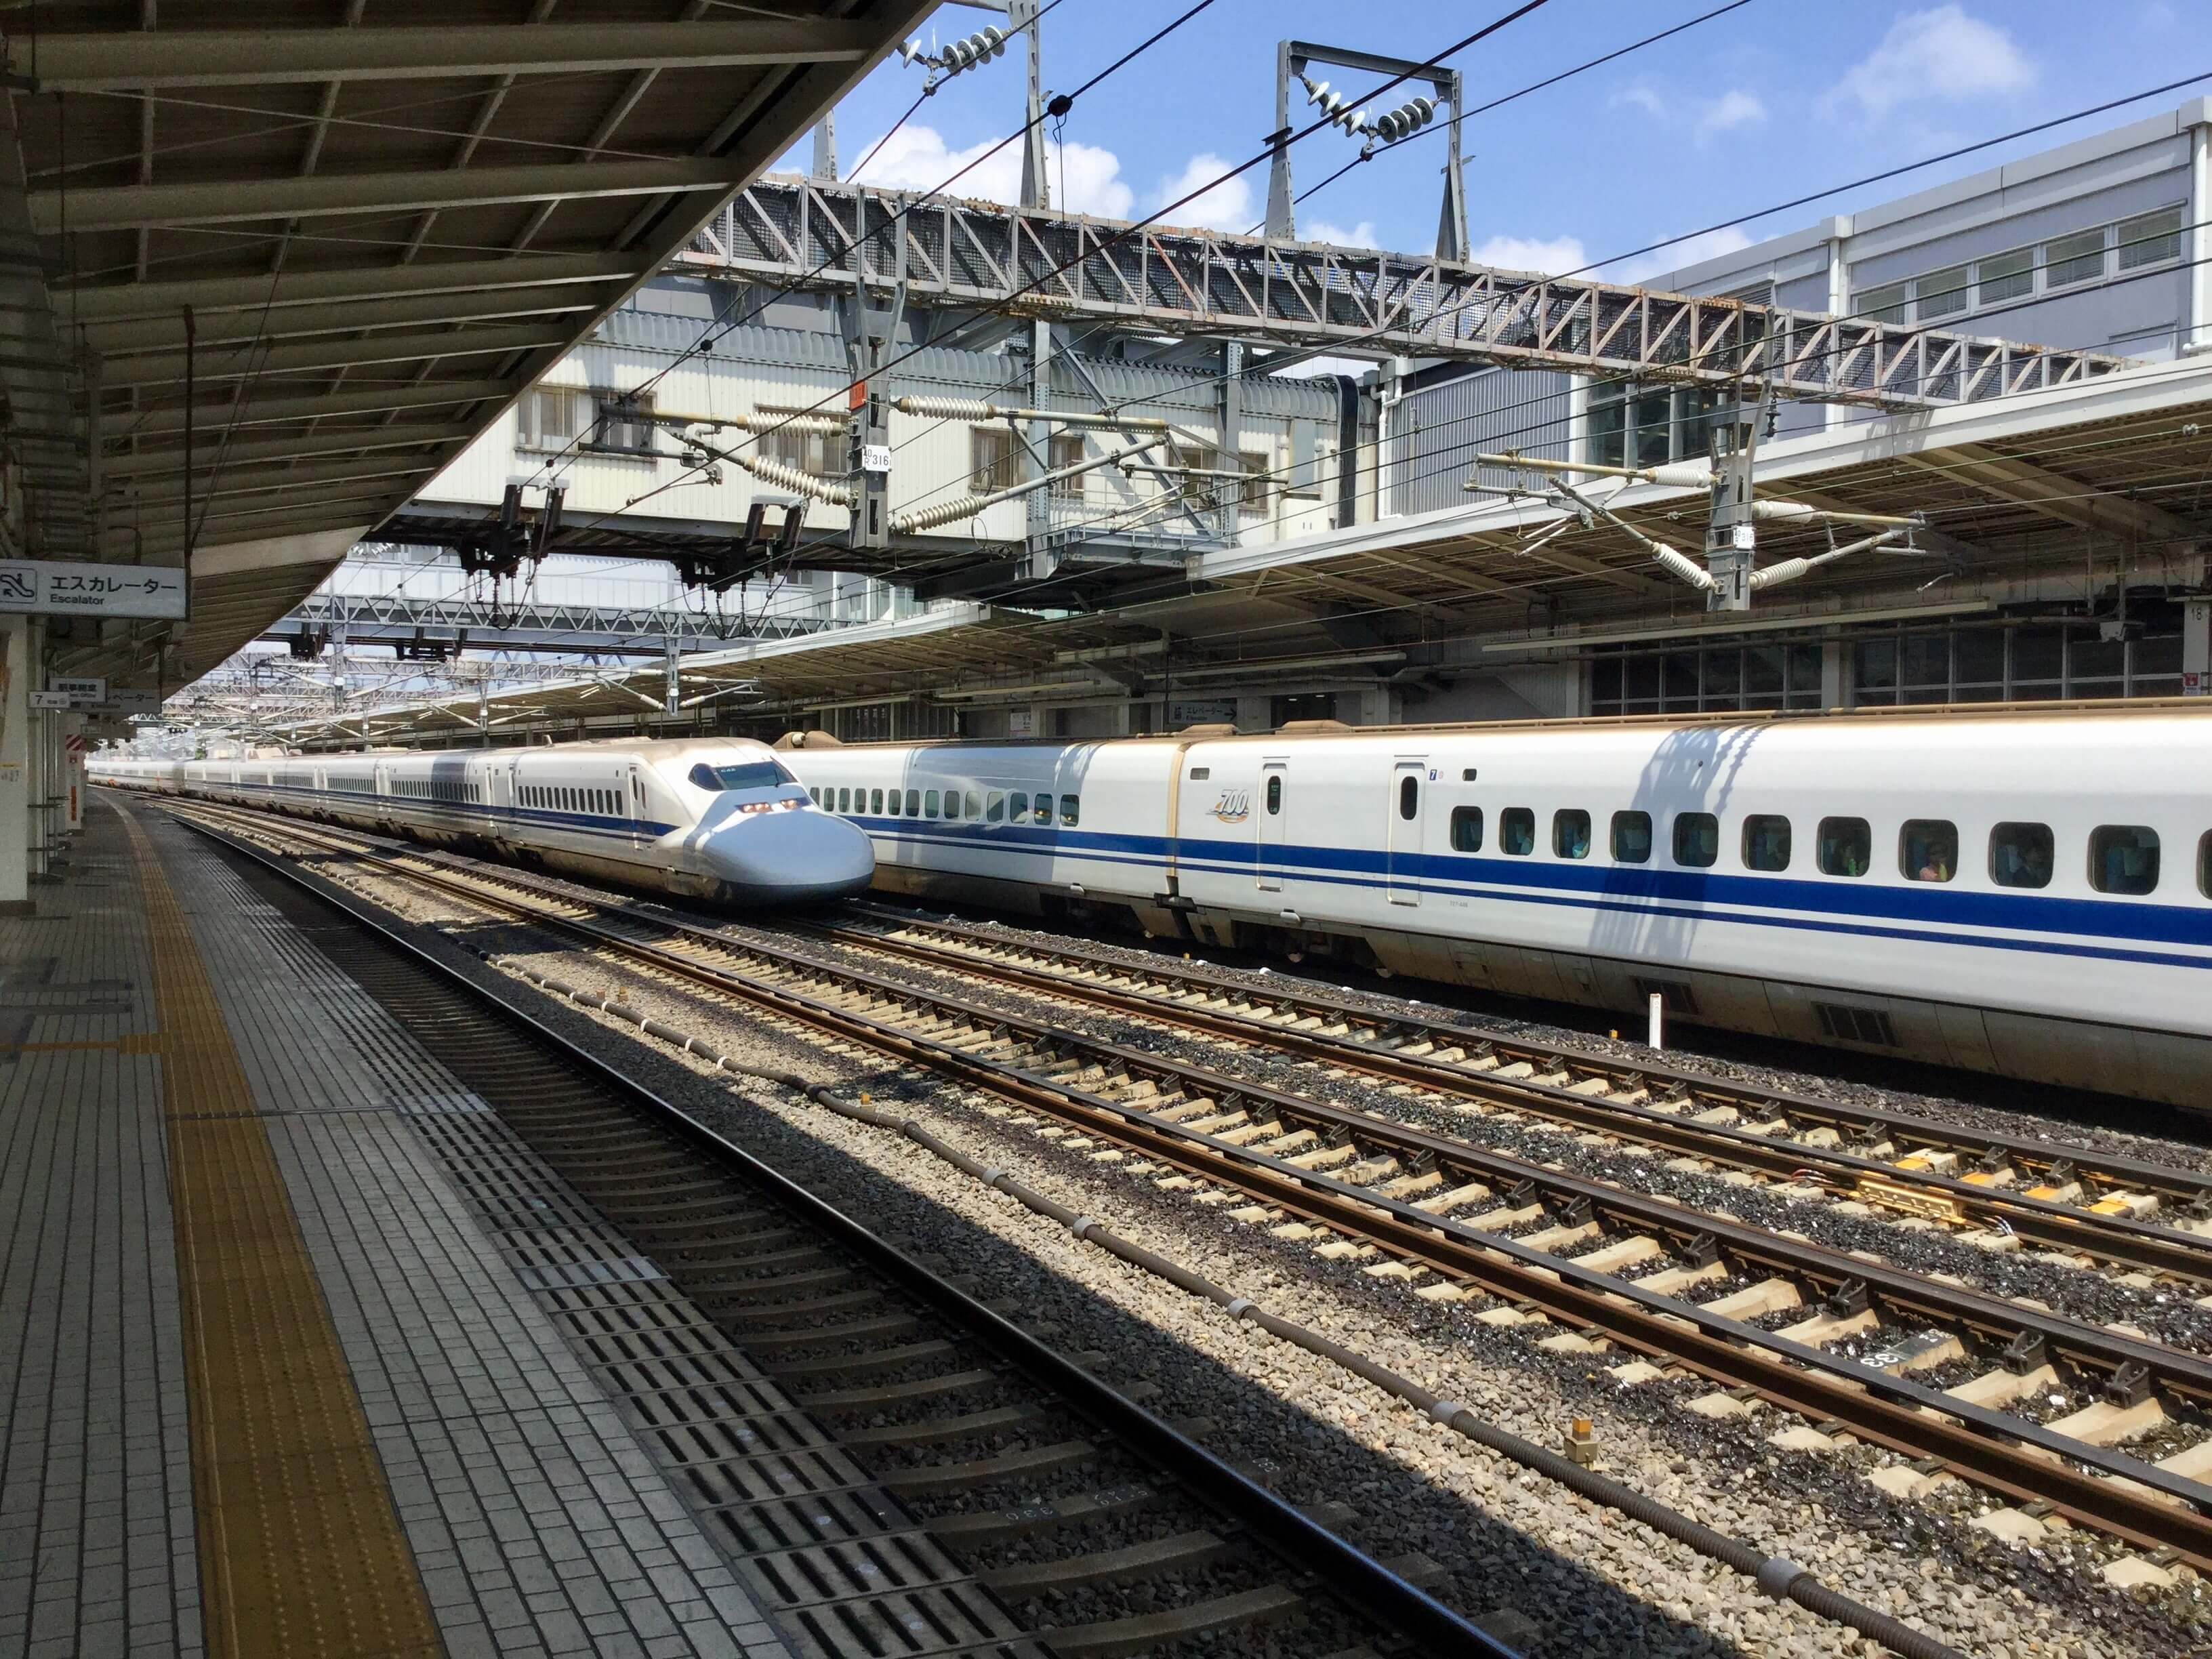 Shinkansen bullet trains in Japan